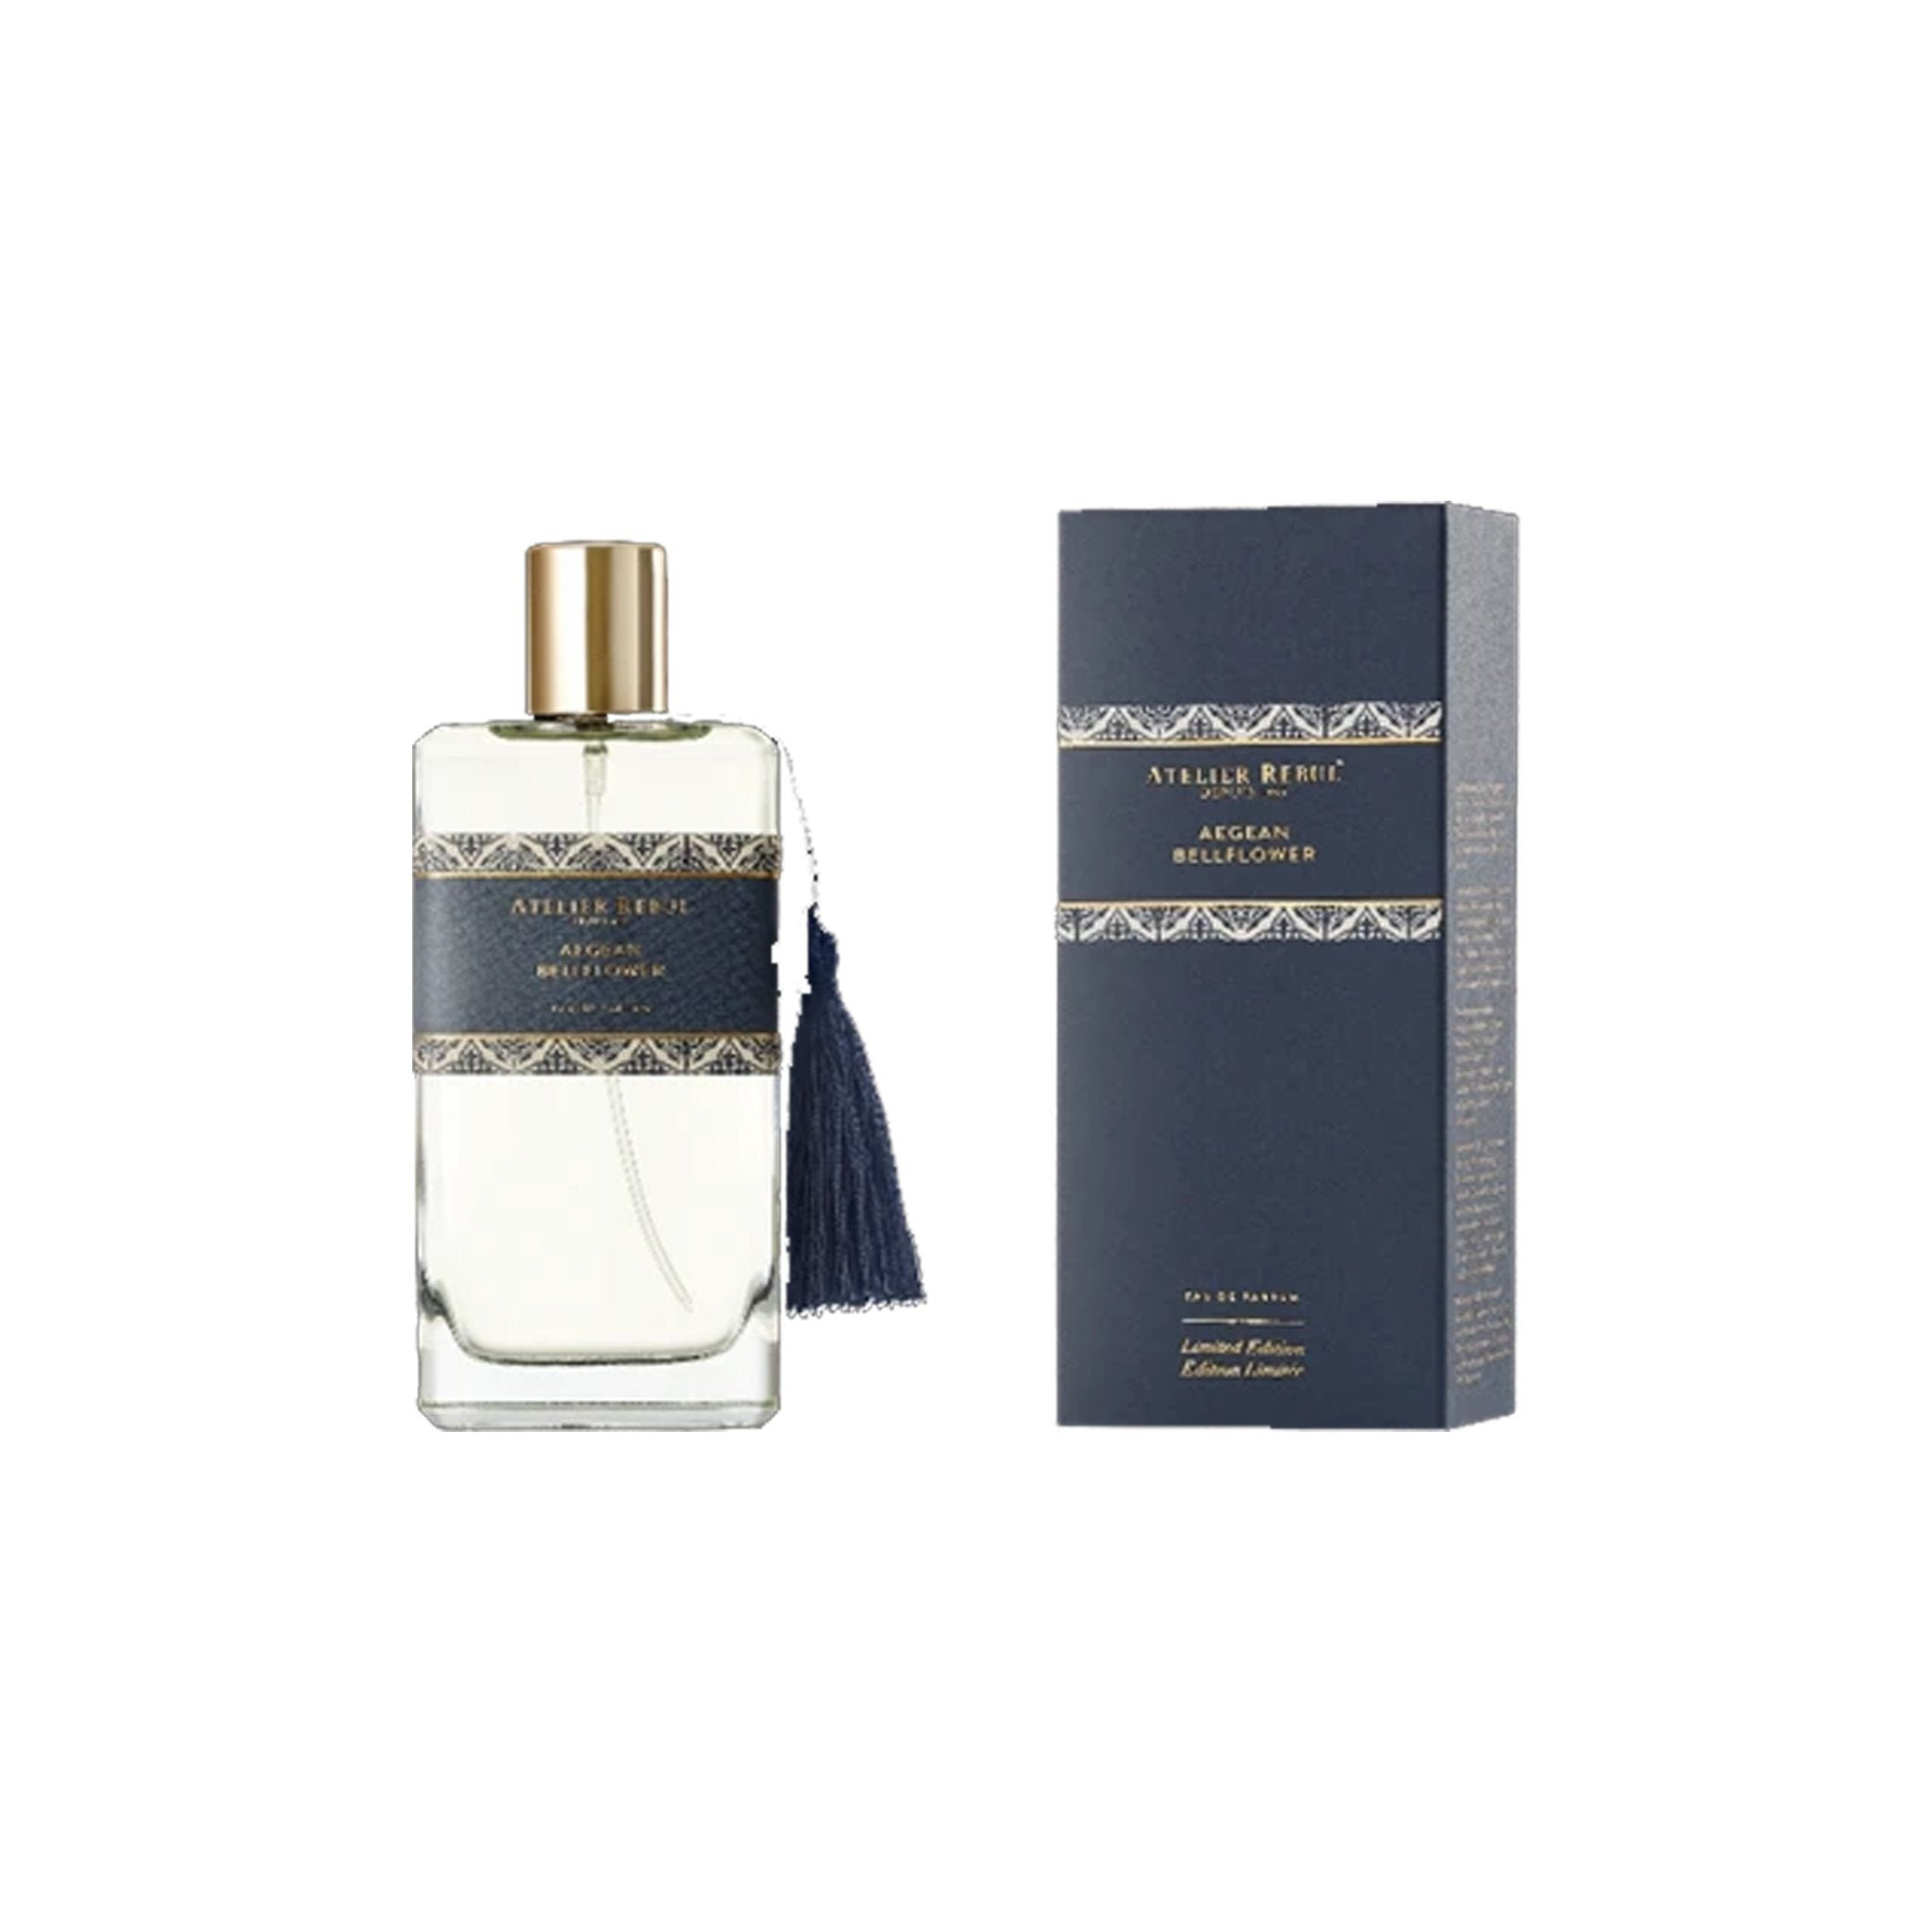 Aegean Bellflower Damesparfum 100ml